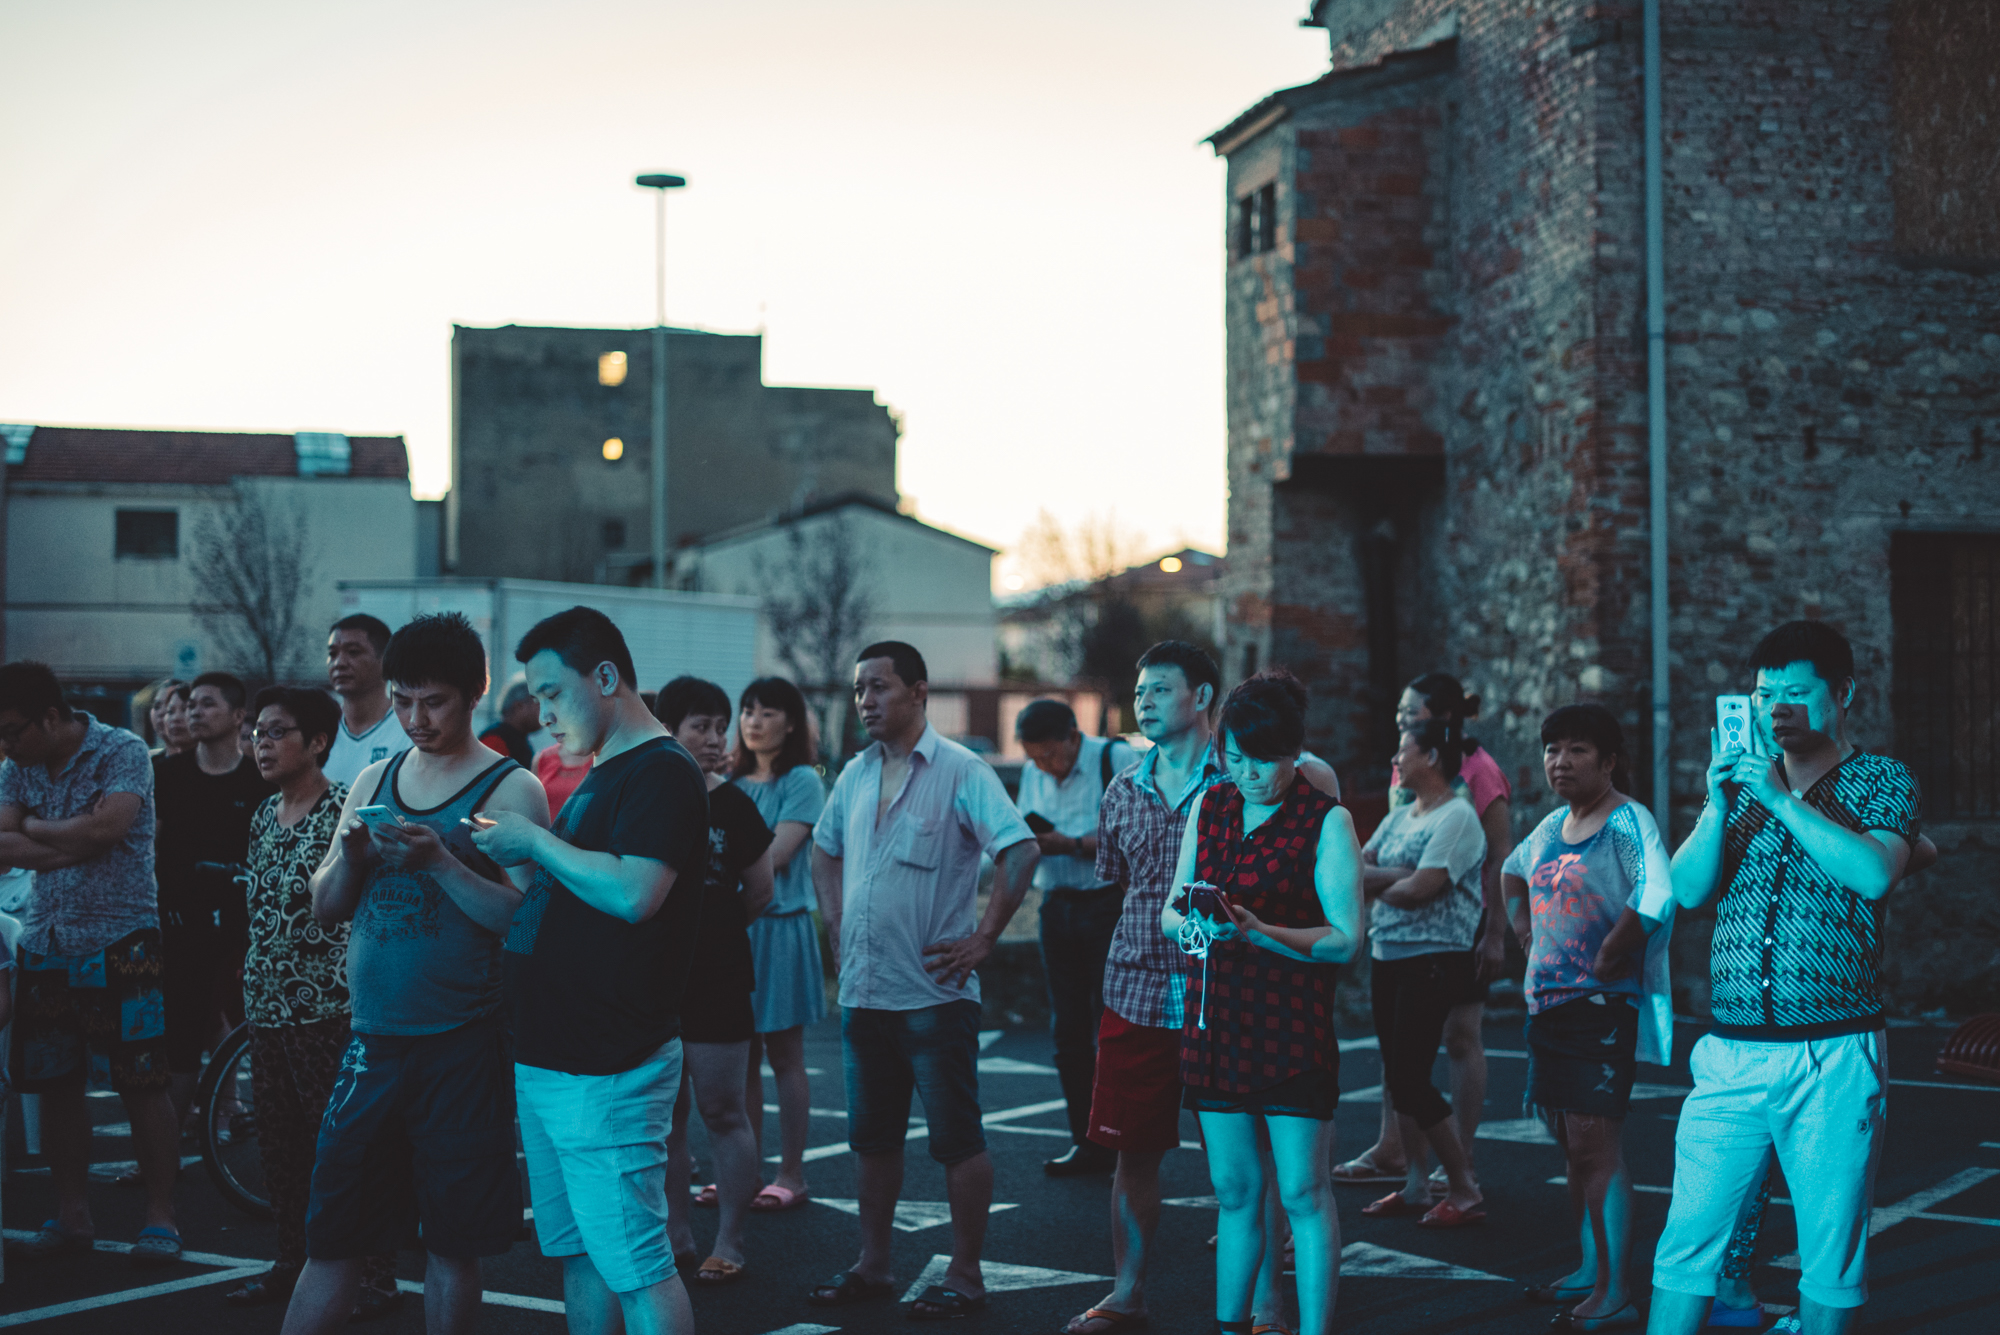 Prato, July 2016. Chinese citizens watch and record a show in one of the main squares of the local Chinatown. Smartphones and tables are still the main source of entertainment, communication and contact with friends and relatives in China for the inhabitants of Chinatown.